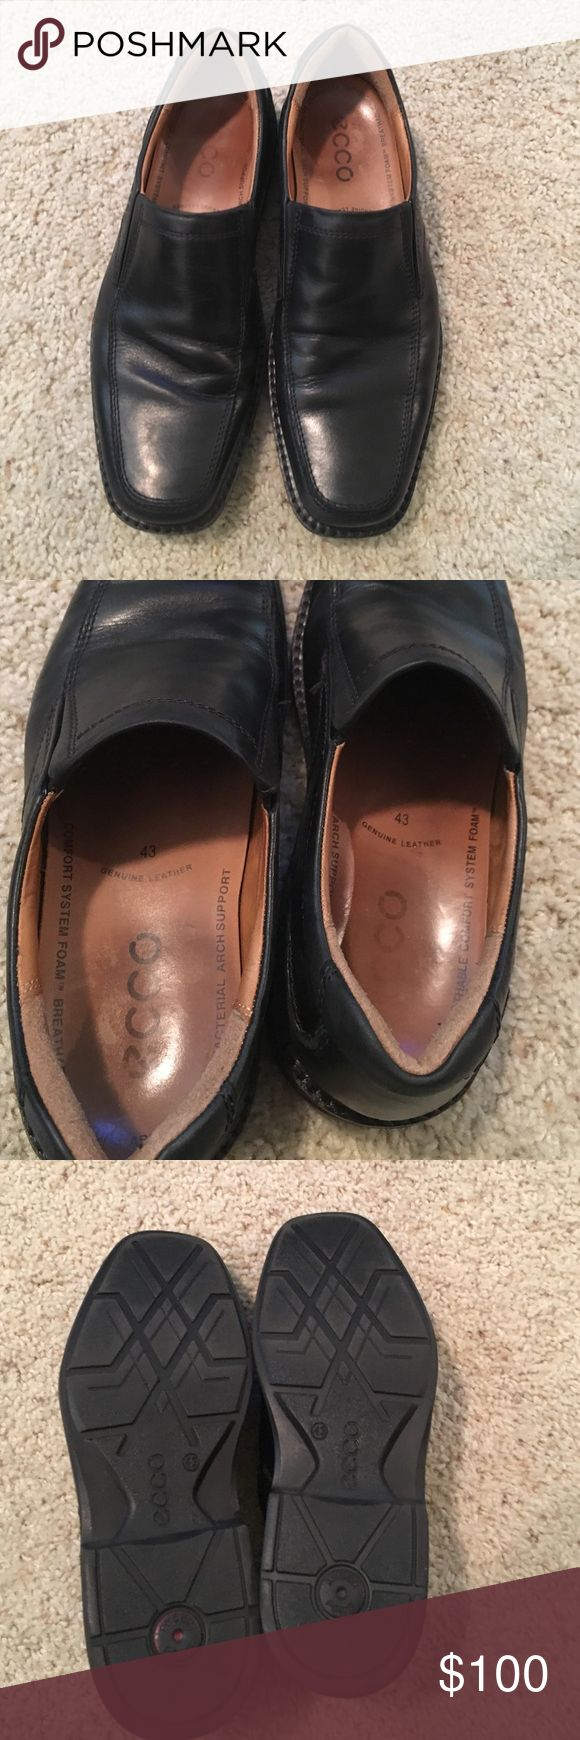 Ecco Men's slip on black dress shoes size 9/43 Lightly used Men's black Ecco slip on square toed dress shoes, size 9m/43 Ecco Shoes Loafers & Slip-Ons